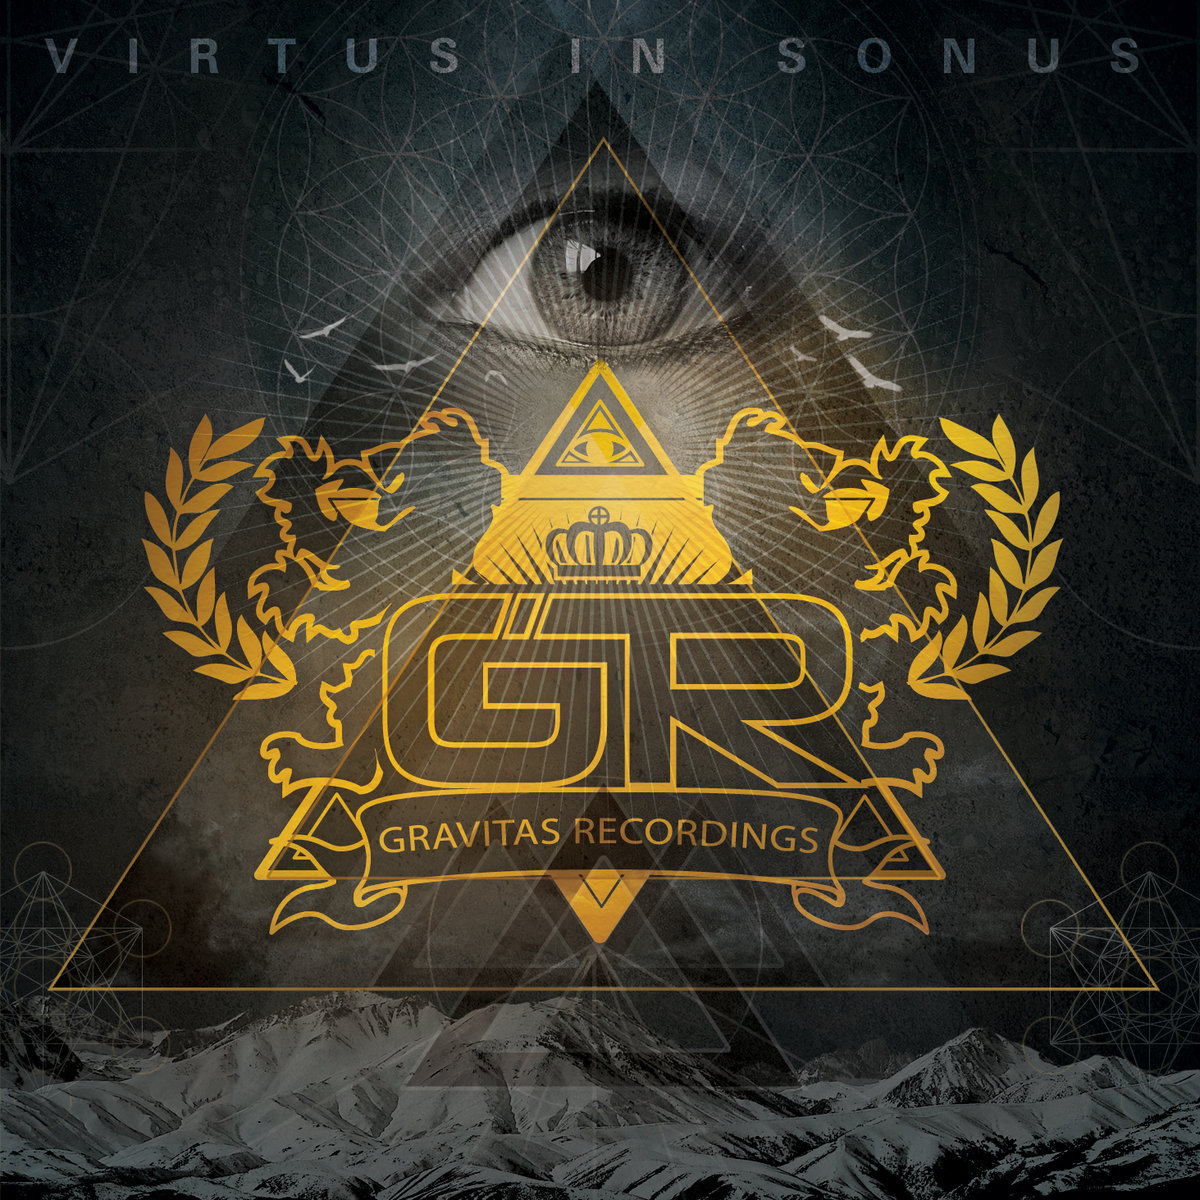 Various Artists - Virtus In Sonus